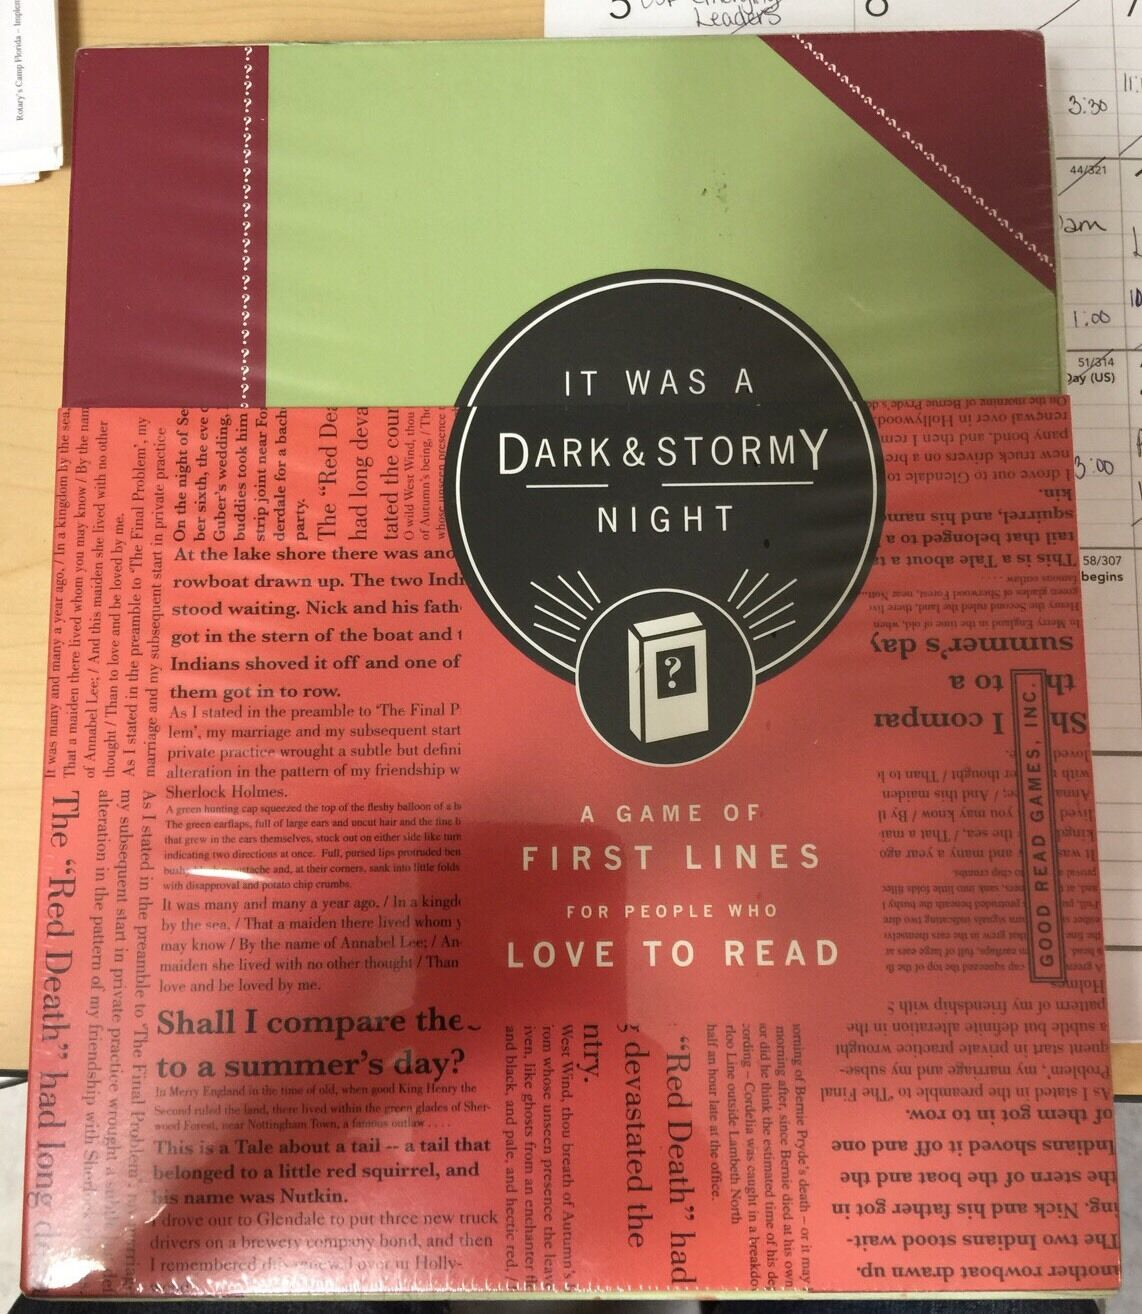 It Was a Dark & Stormy Night - A Game of First Lines for People Who Love to Read